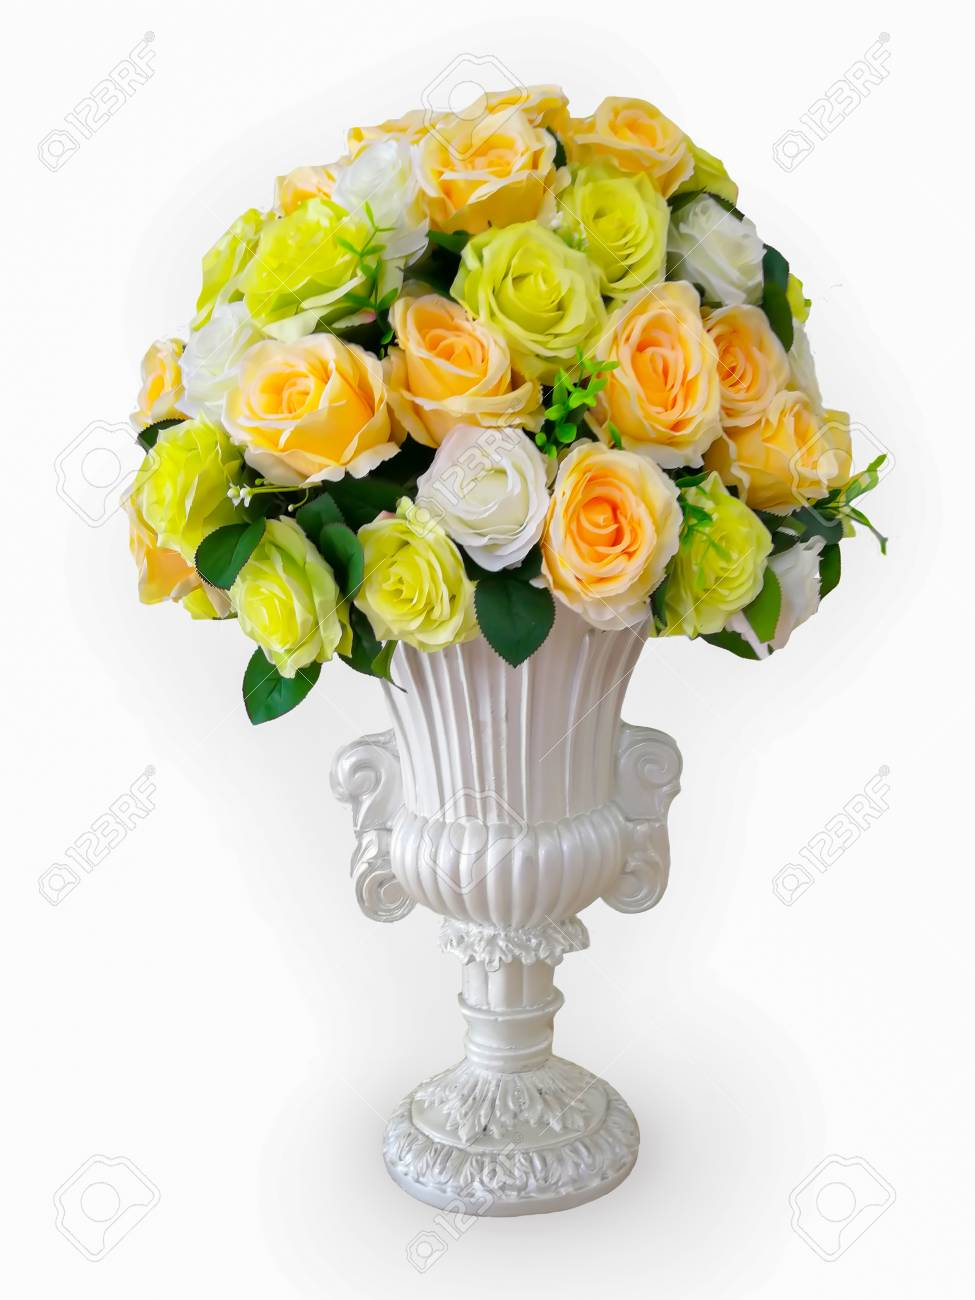 Artificial Flowers Roses From Foam Pink Blue And White Red Yellow Stock Photo Picture And Royalty Free Image Image 98216277